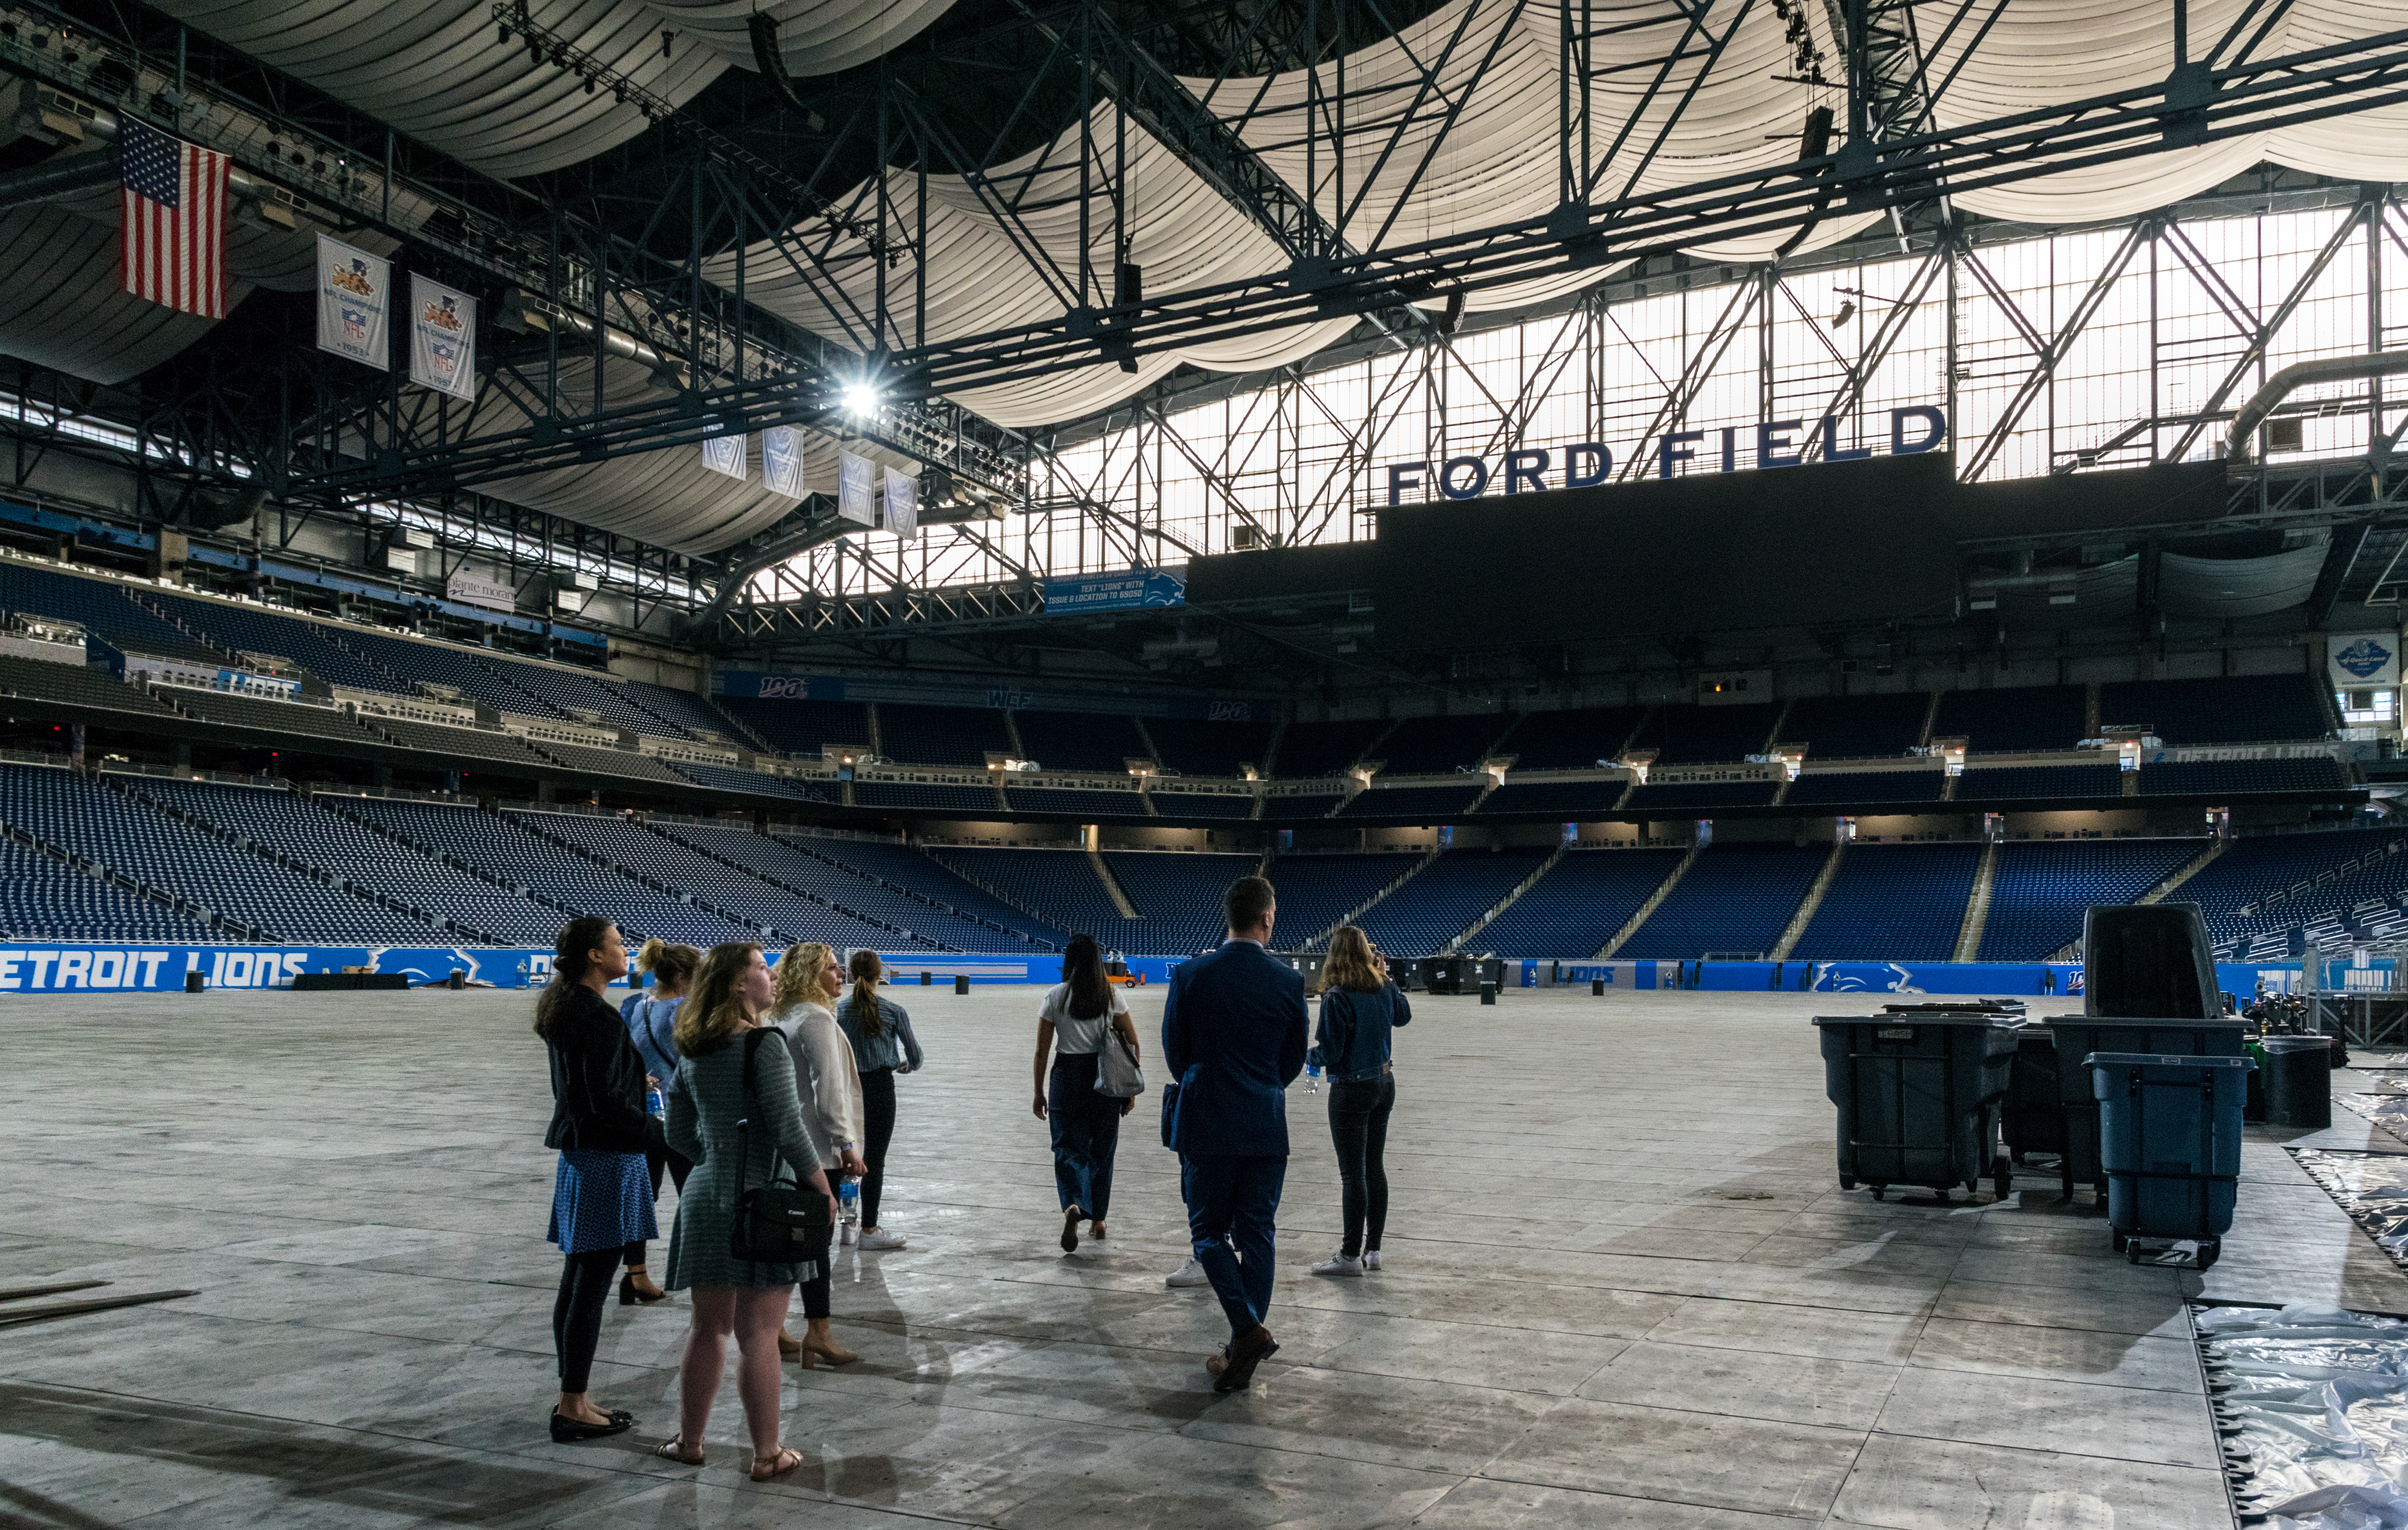 Students on the Explore Detroit trip got to tour Ford Field, home of the Detroit Lions. John Quint | Courtesy